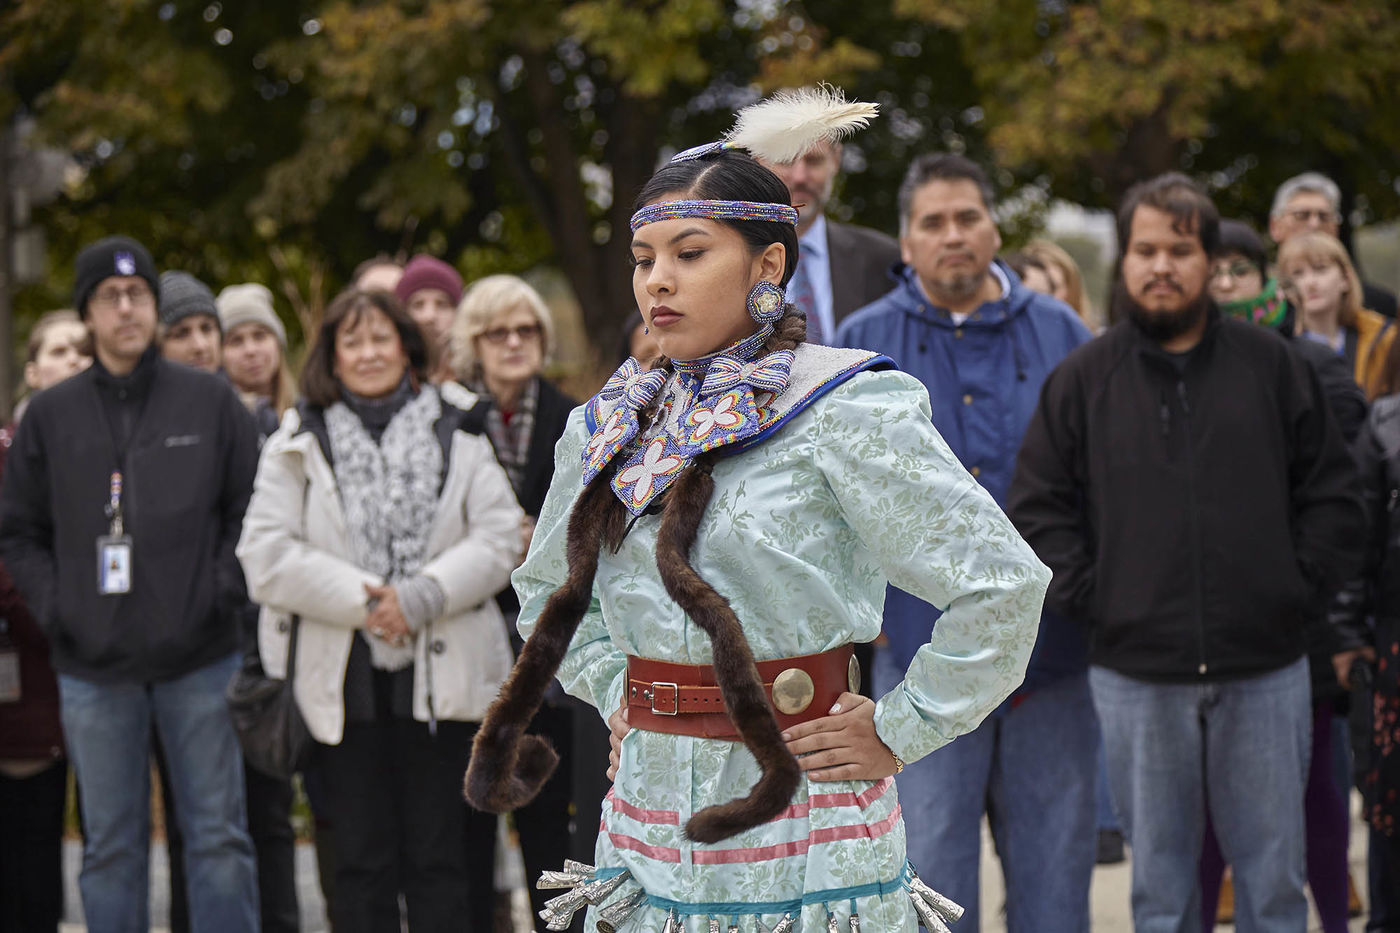 A woman, Maritza Garcia, wearing a light blue dress and a headdress with a feather, performs a dance in front of onlookers at the land acknowledgment ceremony.